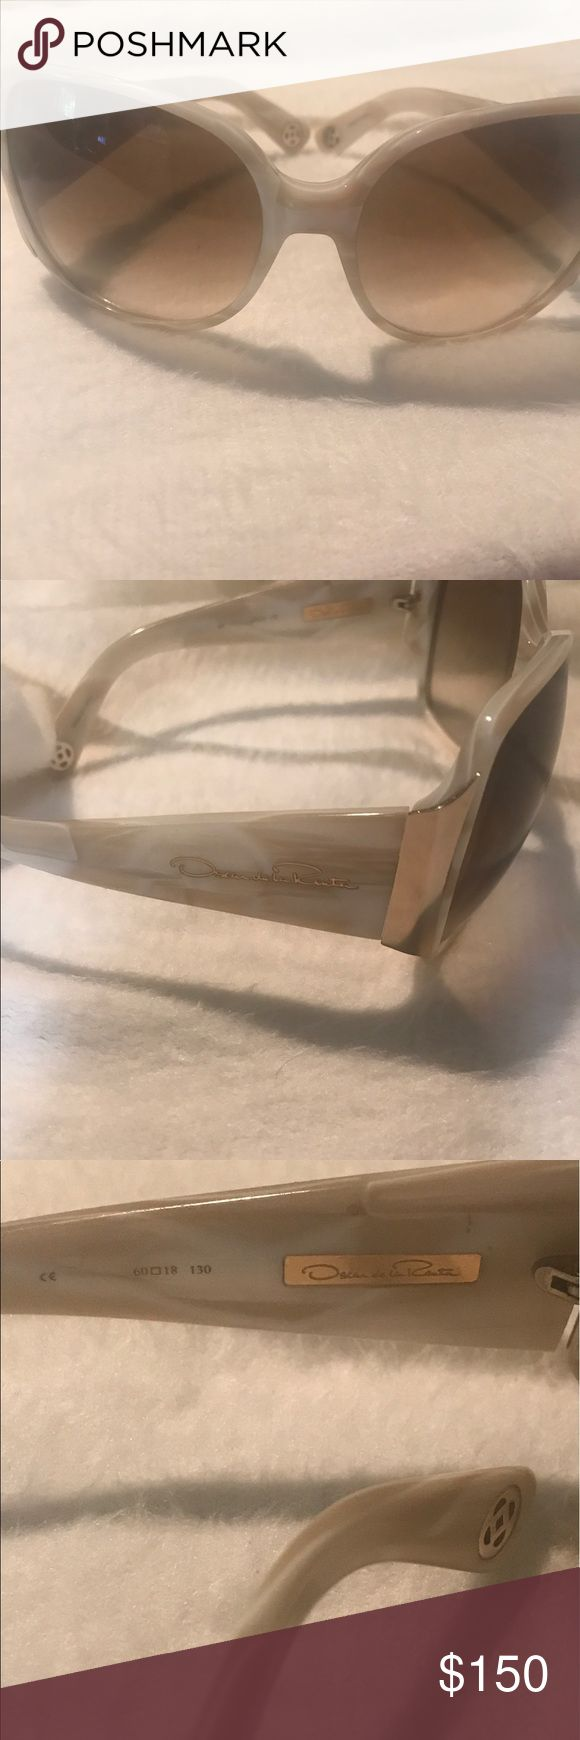 Vintage Oscar De LaRenta Sunglasses Authentic Mother of Pearl... hard to find Oscar sunglasses! These are perfect not one scratch or imperfection! Gold hardware.Great for yearound. Classic and distinguished. ODLRS 159. Oscar de la Renta Accessories Sunglasses